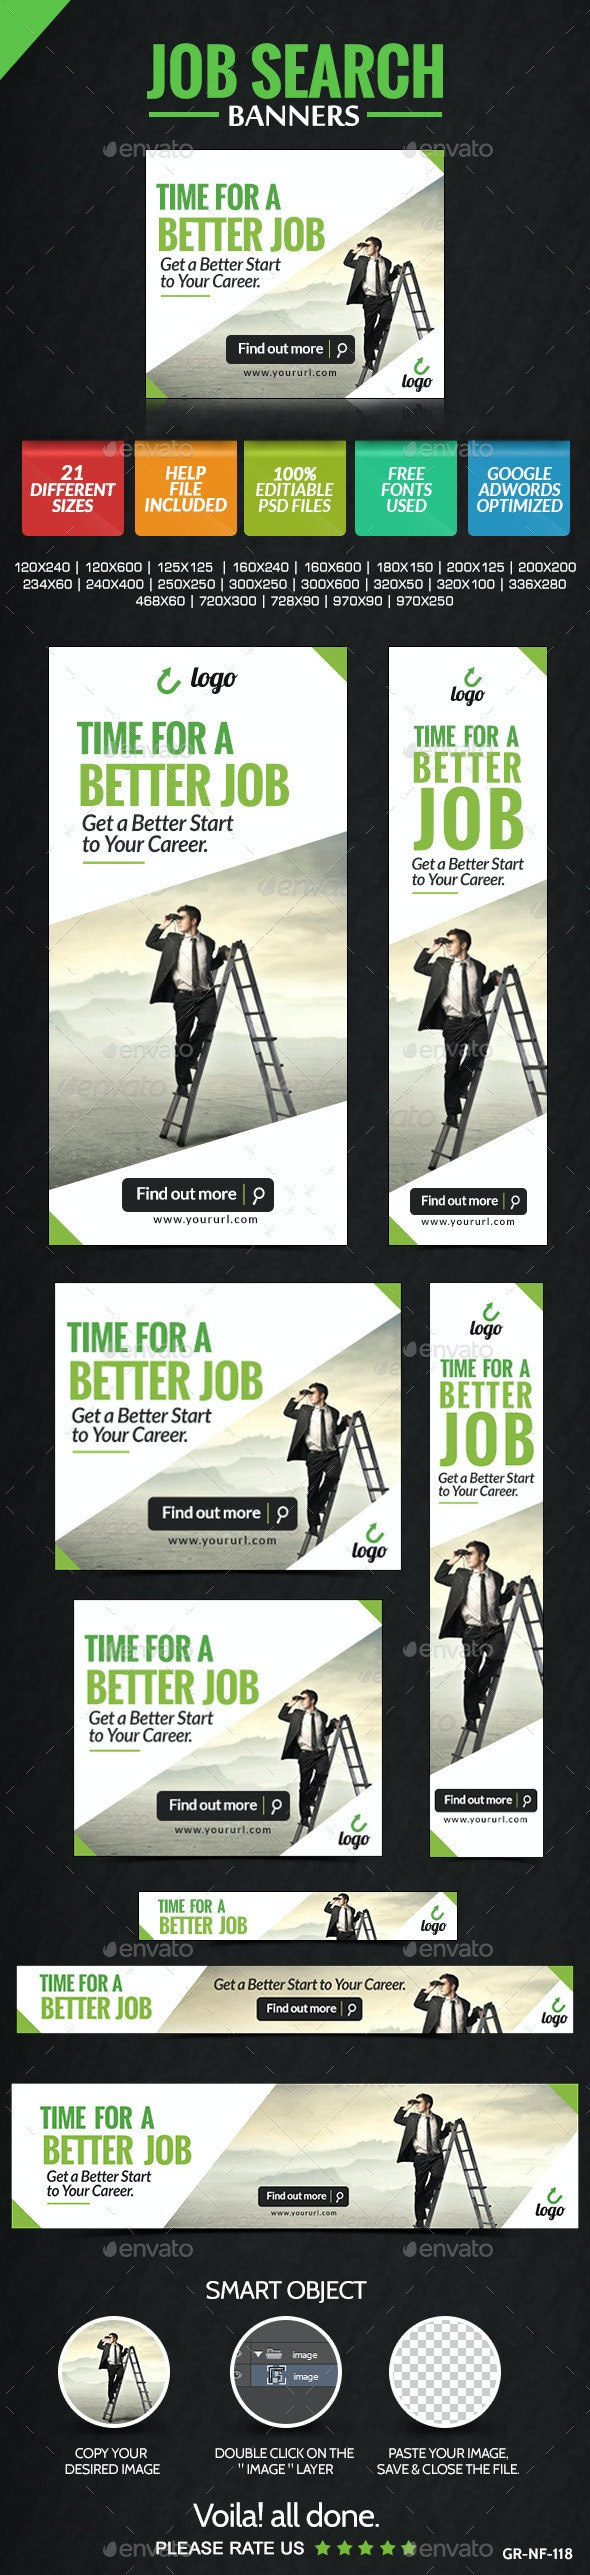 Job Search Banners - Banners & Ads Web Elements